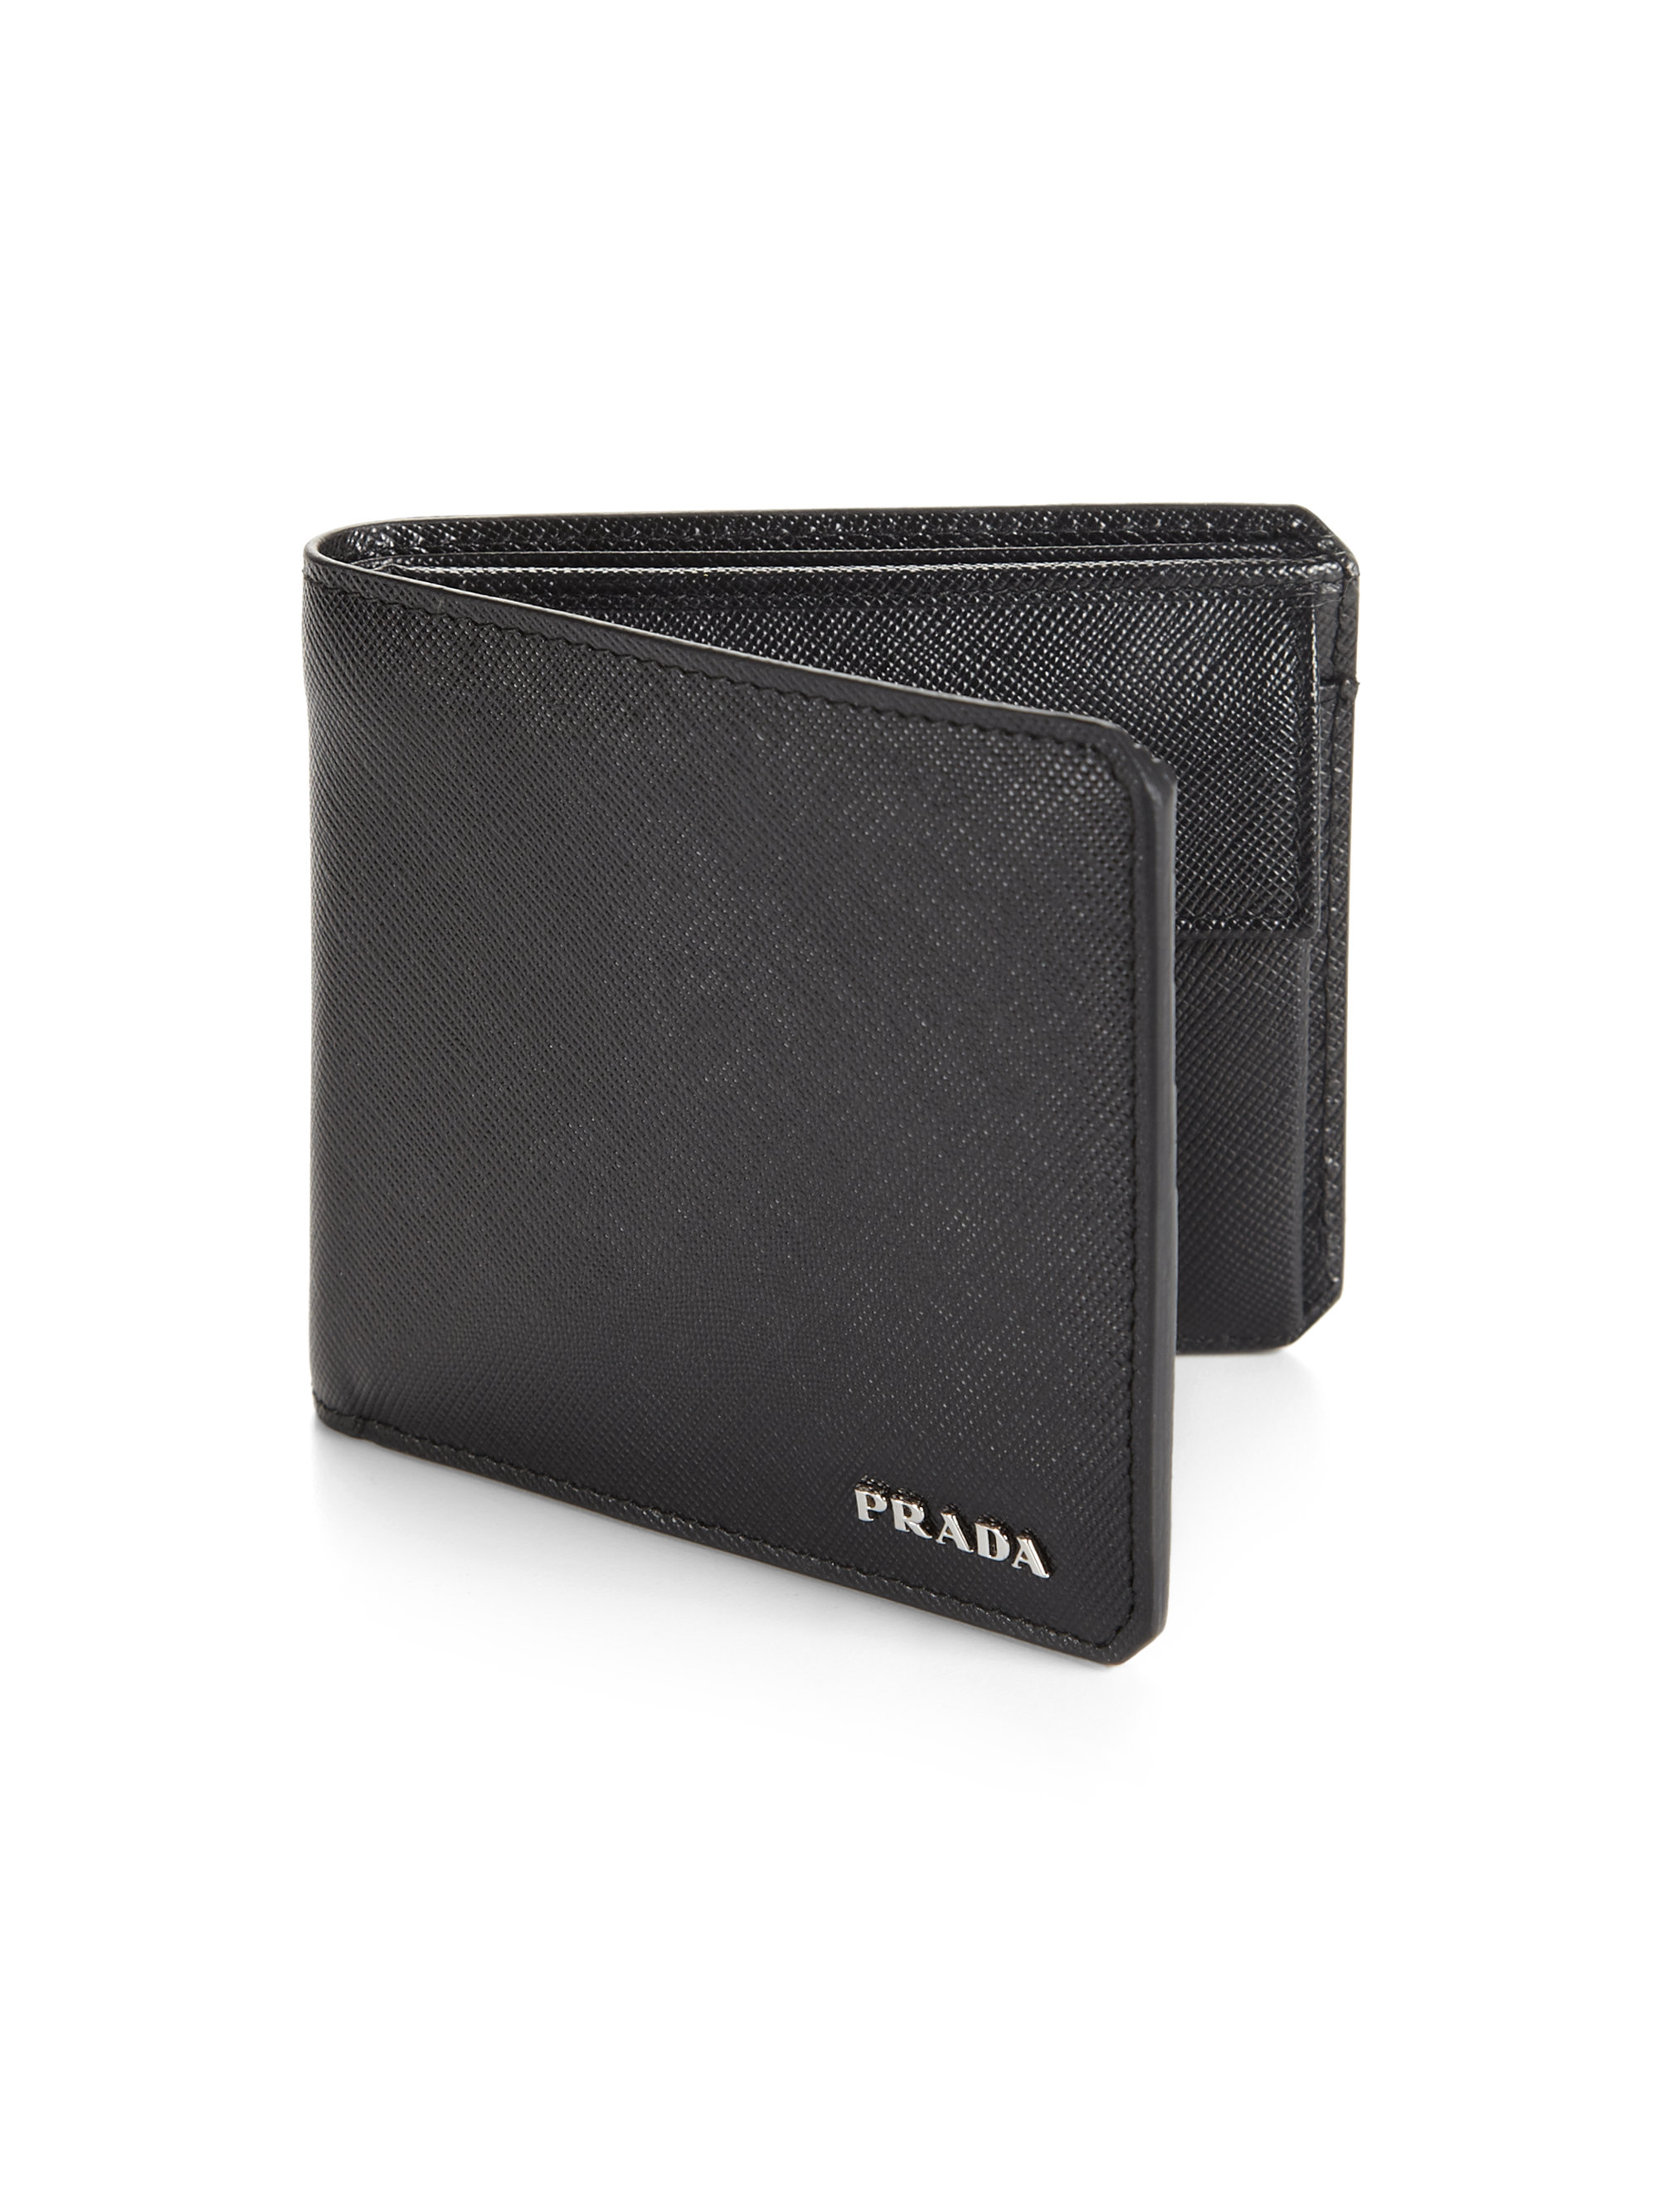 prada leather wallet mens